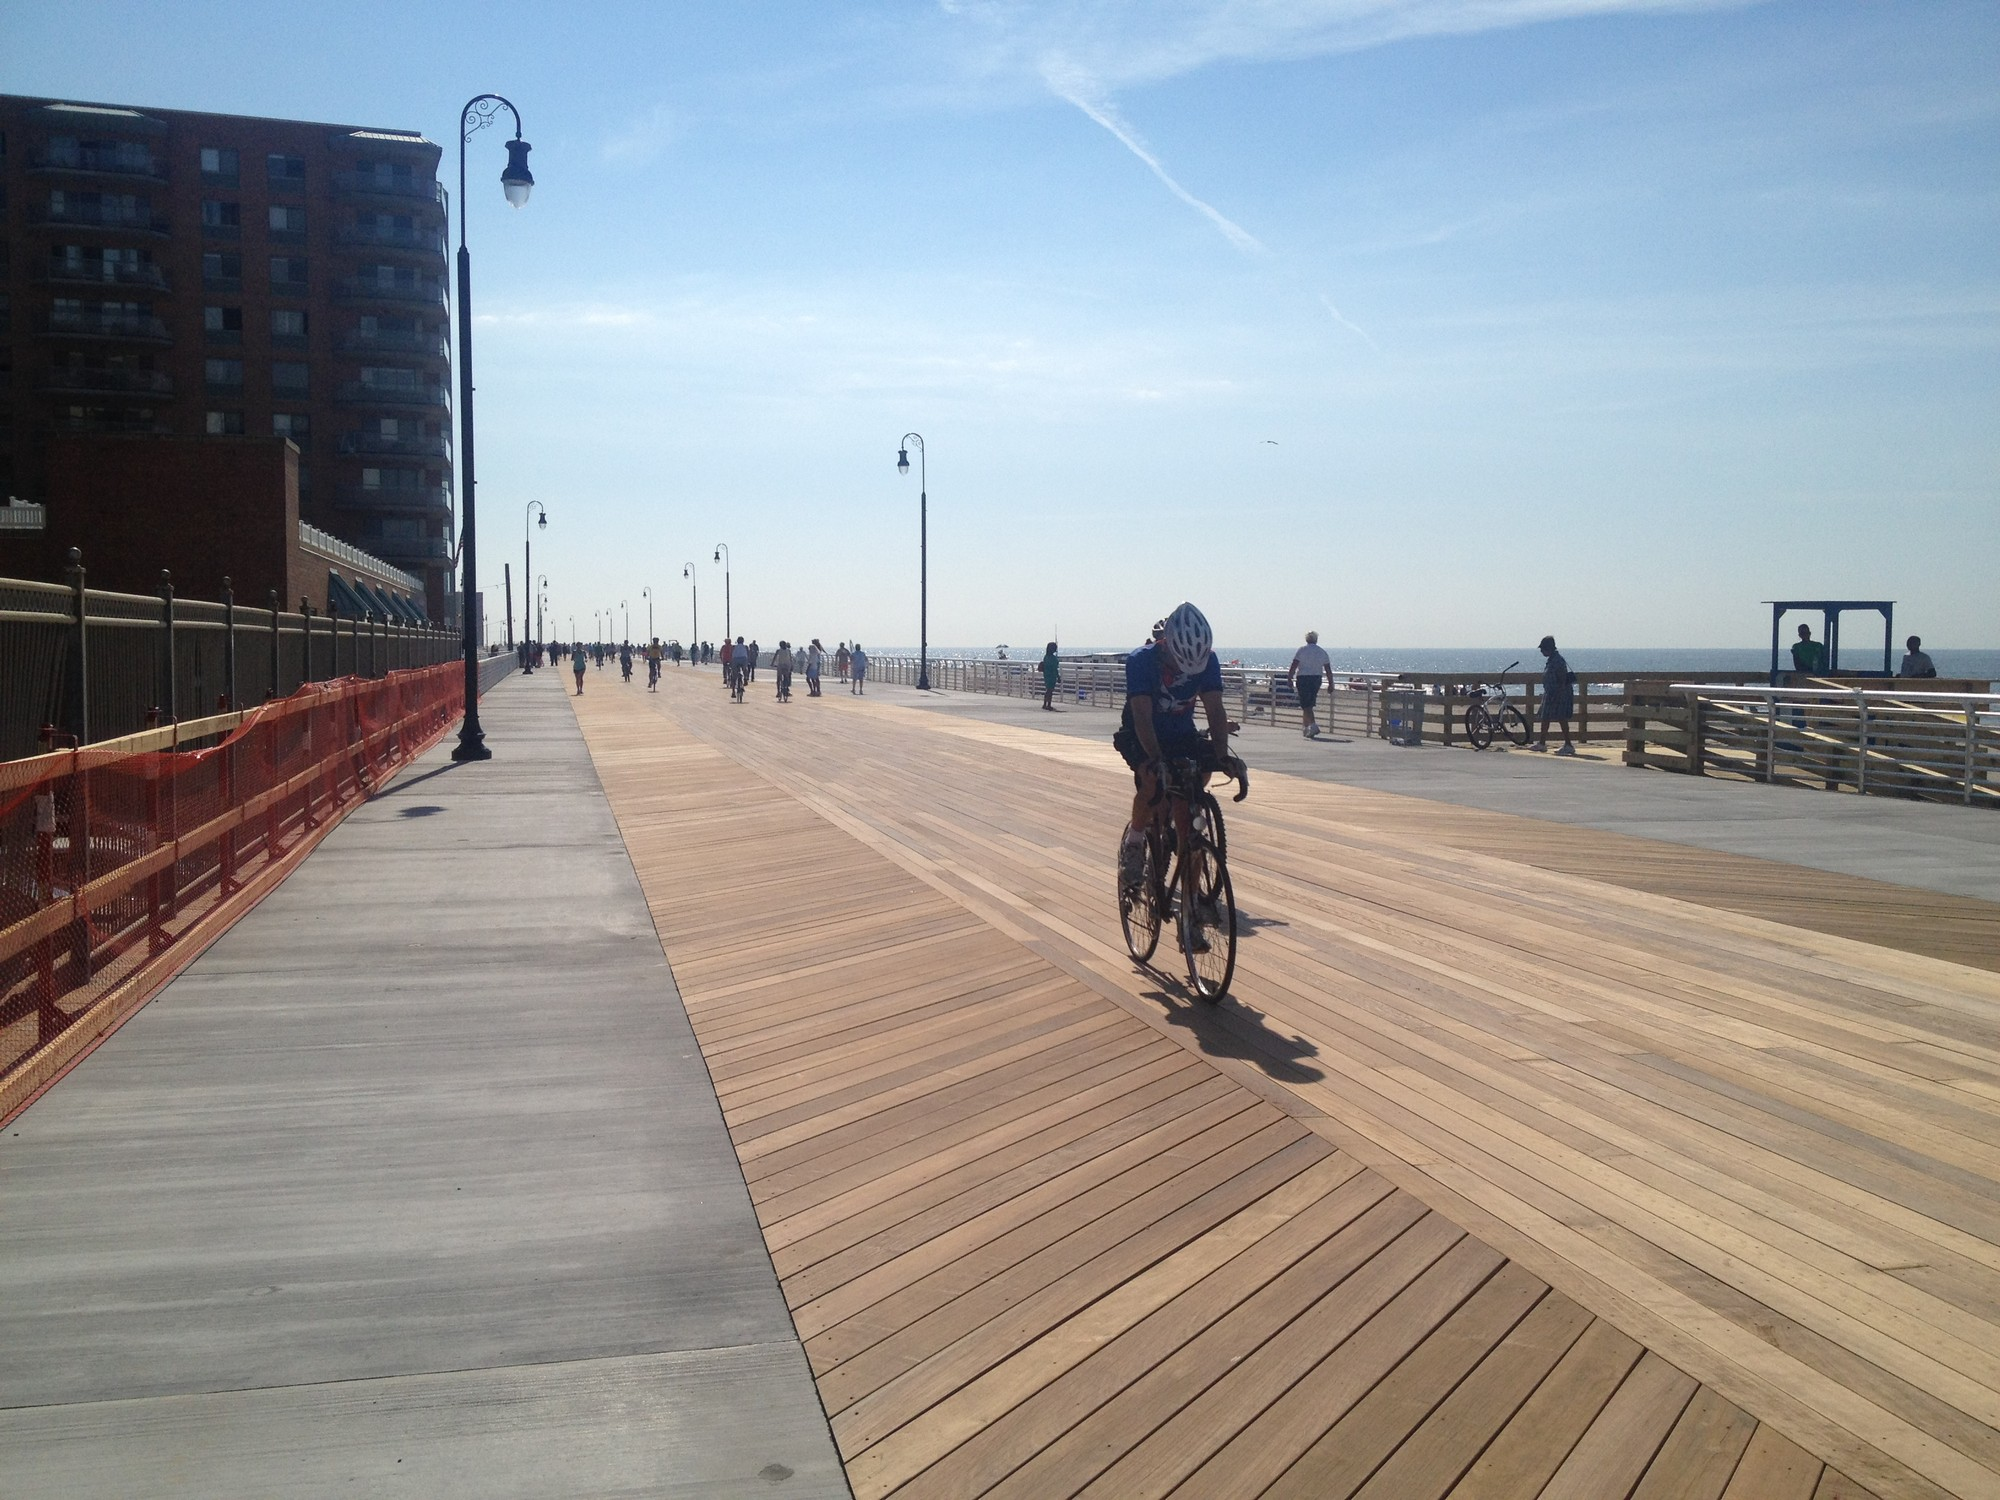 The city announced the opening of yet another section of the boardwalk on Friday.